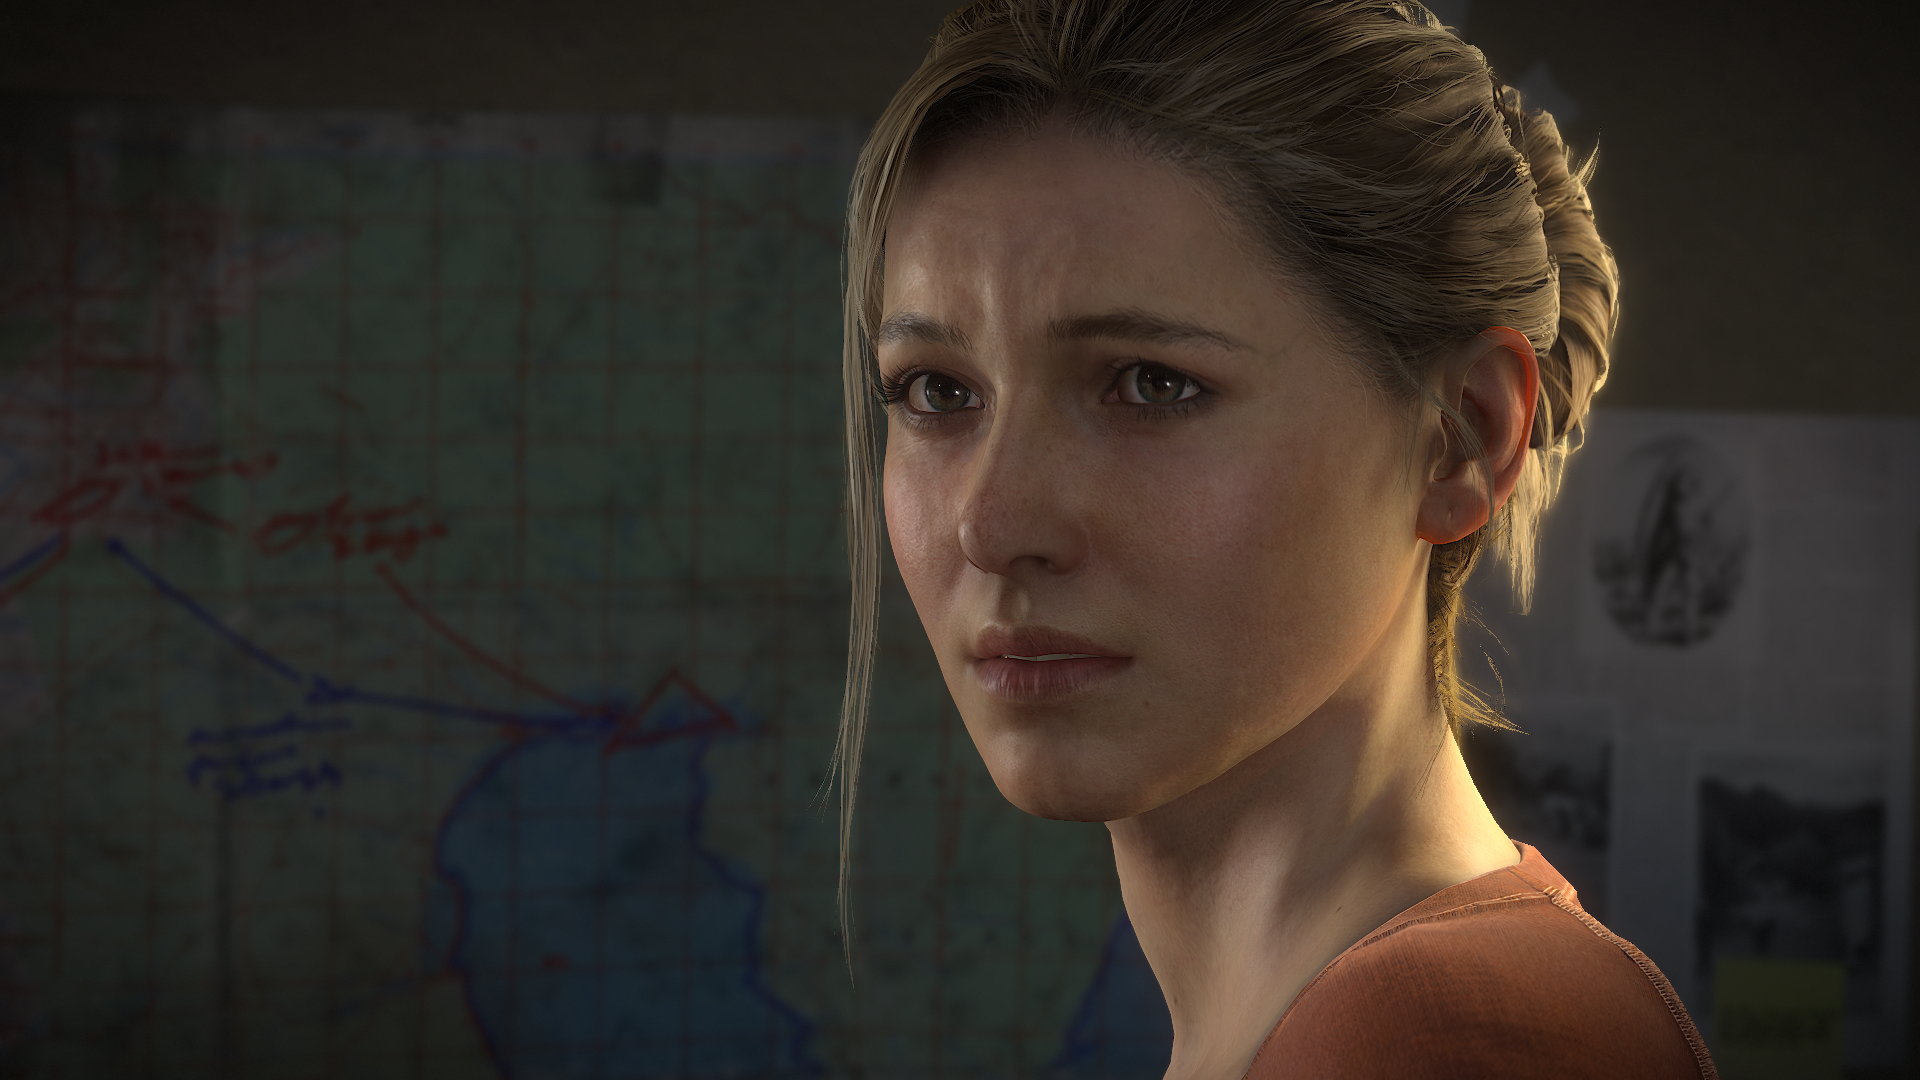 Why Uncharted 4 Devs Asked One Sexist Focus Tester To Leave %name